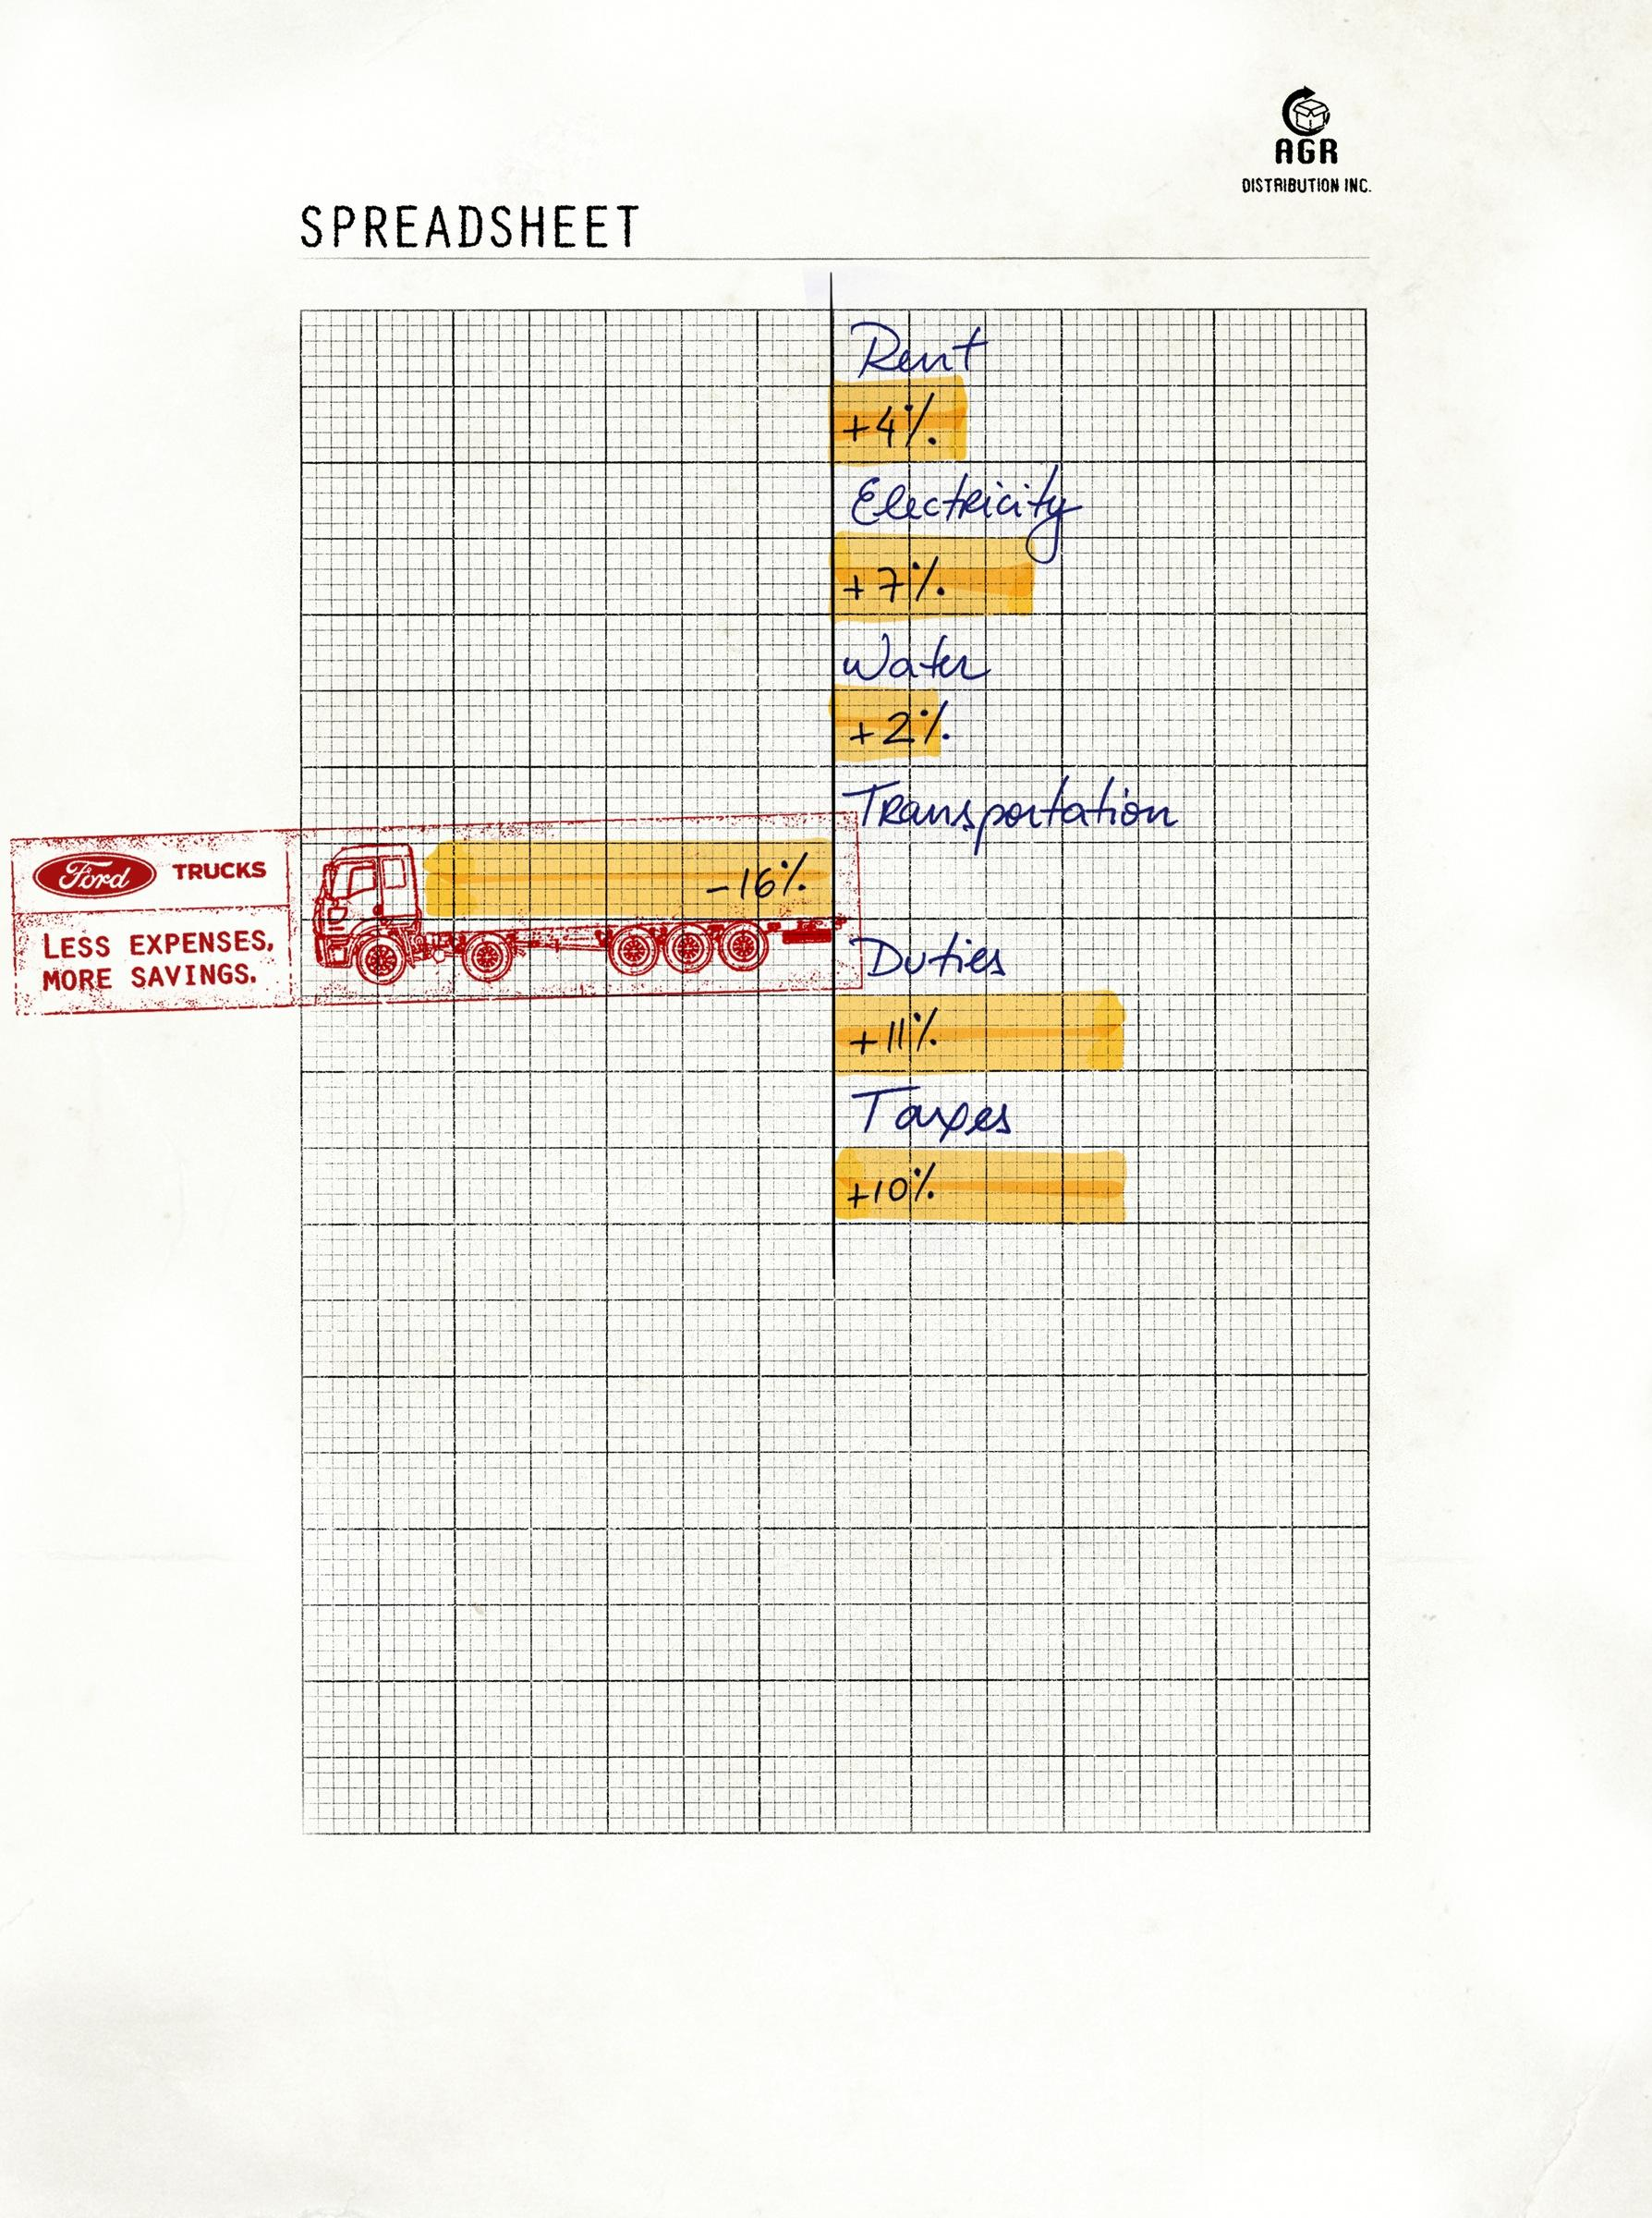 Ford Print Ad -  Spreadsheet, 1